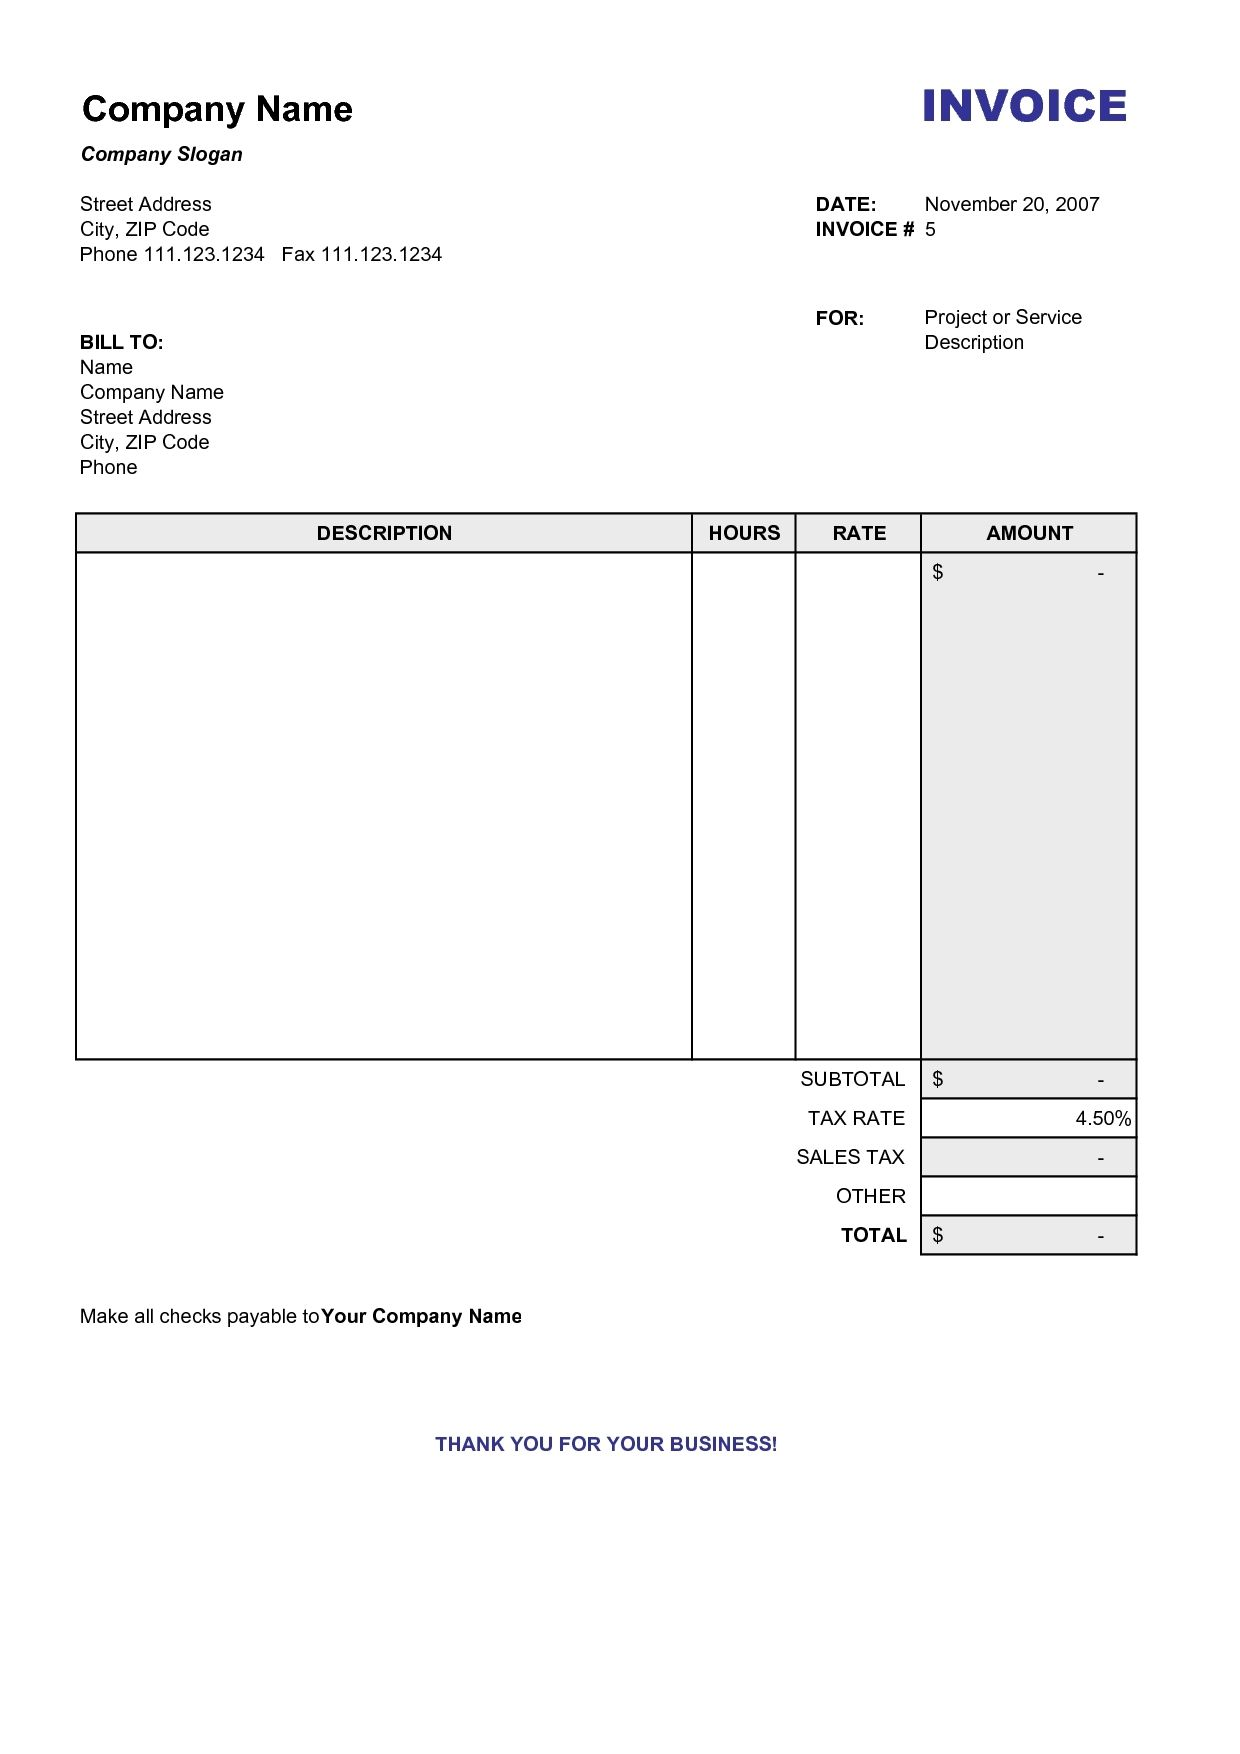 Copy Of A Blank Invoice Invoice Template Free Copy Of Blank - Free printable service invoices for service business